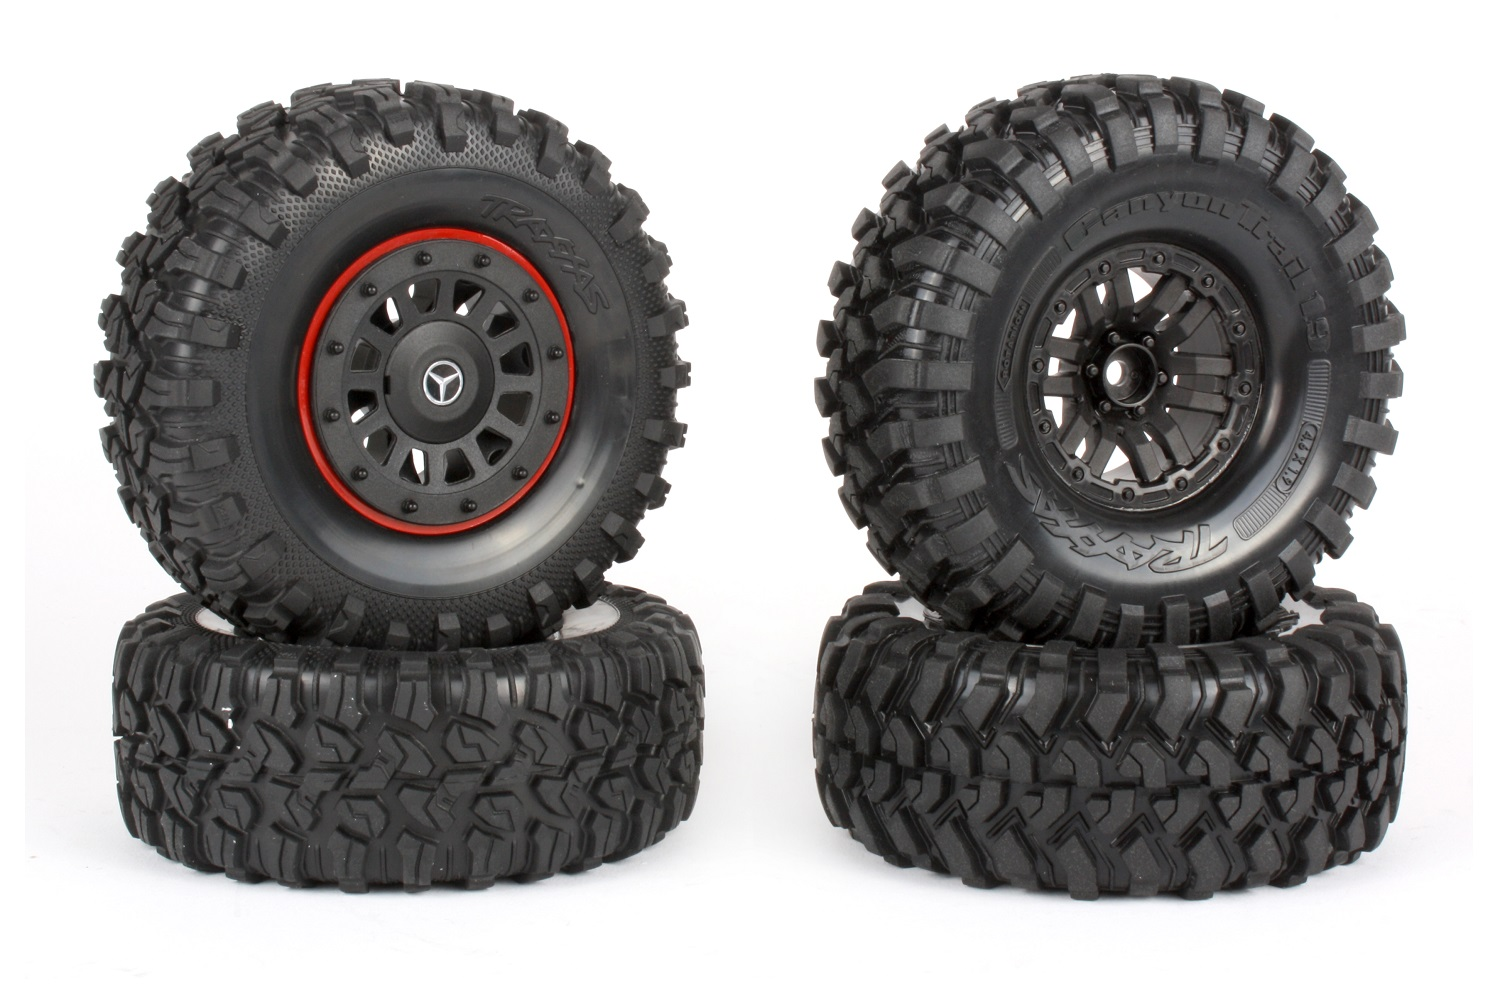 Adding Canyon Trail tires